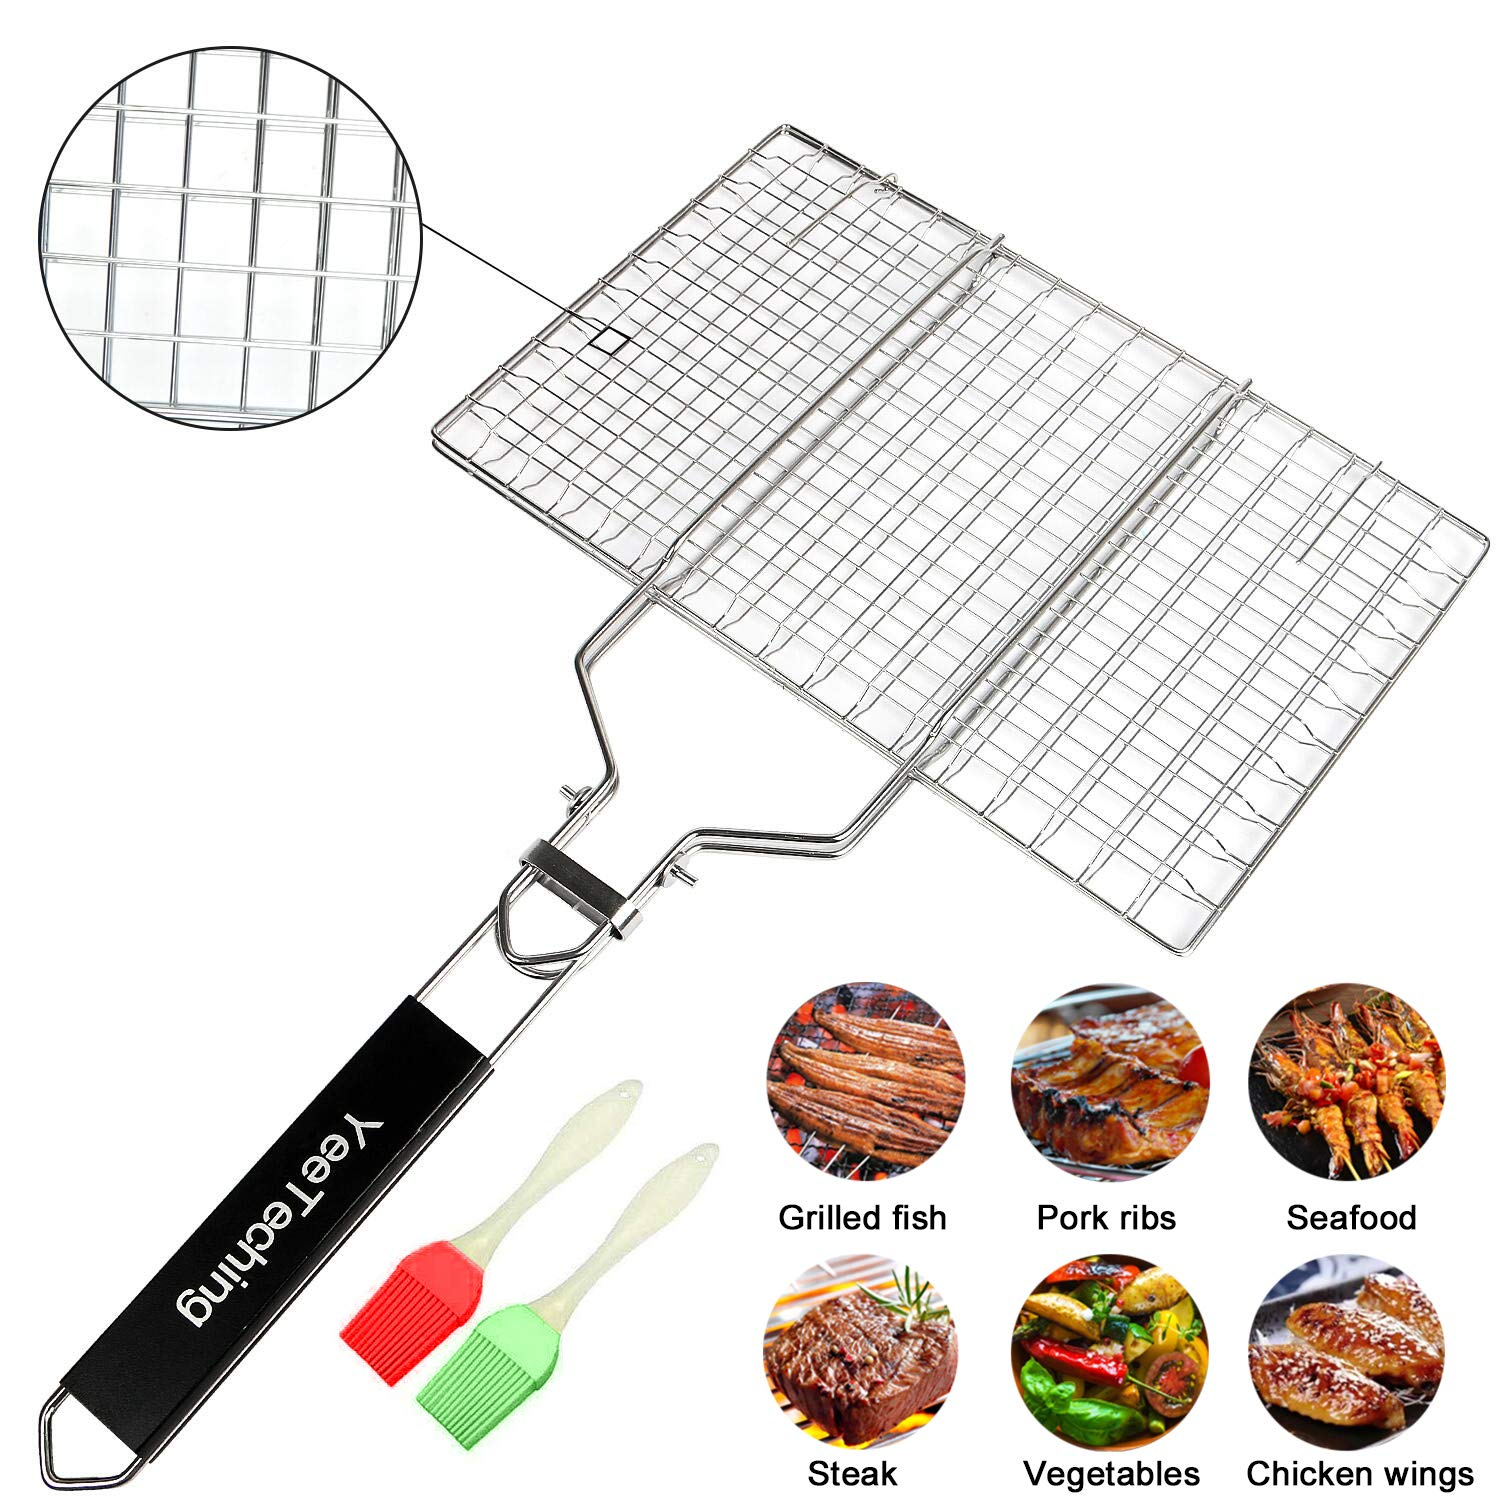 Yeeteching Grill Basket, 13inch Portable Stainless Steel BBQ Barbecue Fish Grilling Baket for Fish,Vegetables, Steak,Shrimp, Chops Bonus an Additional 2Pcs Brush by Yeeteching